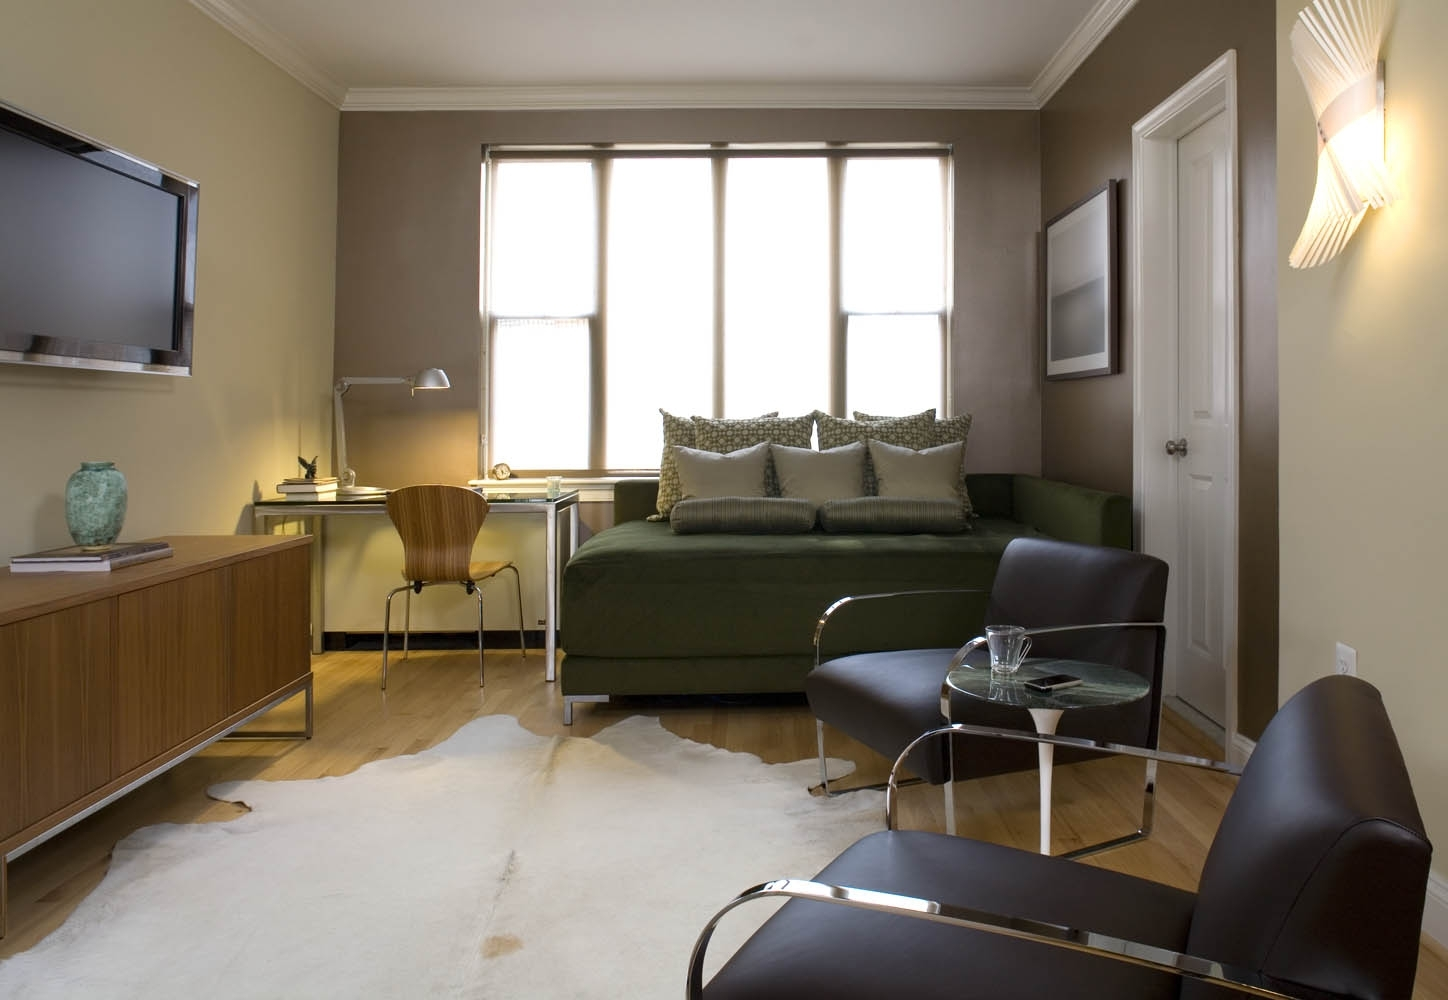 Efficiency Apartment Design How To Stay Safe Looking For No Fee within Best Garden Apartment For Rent Design Ideas